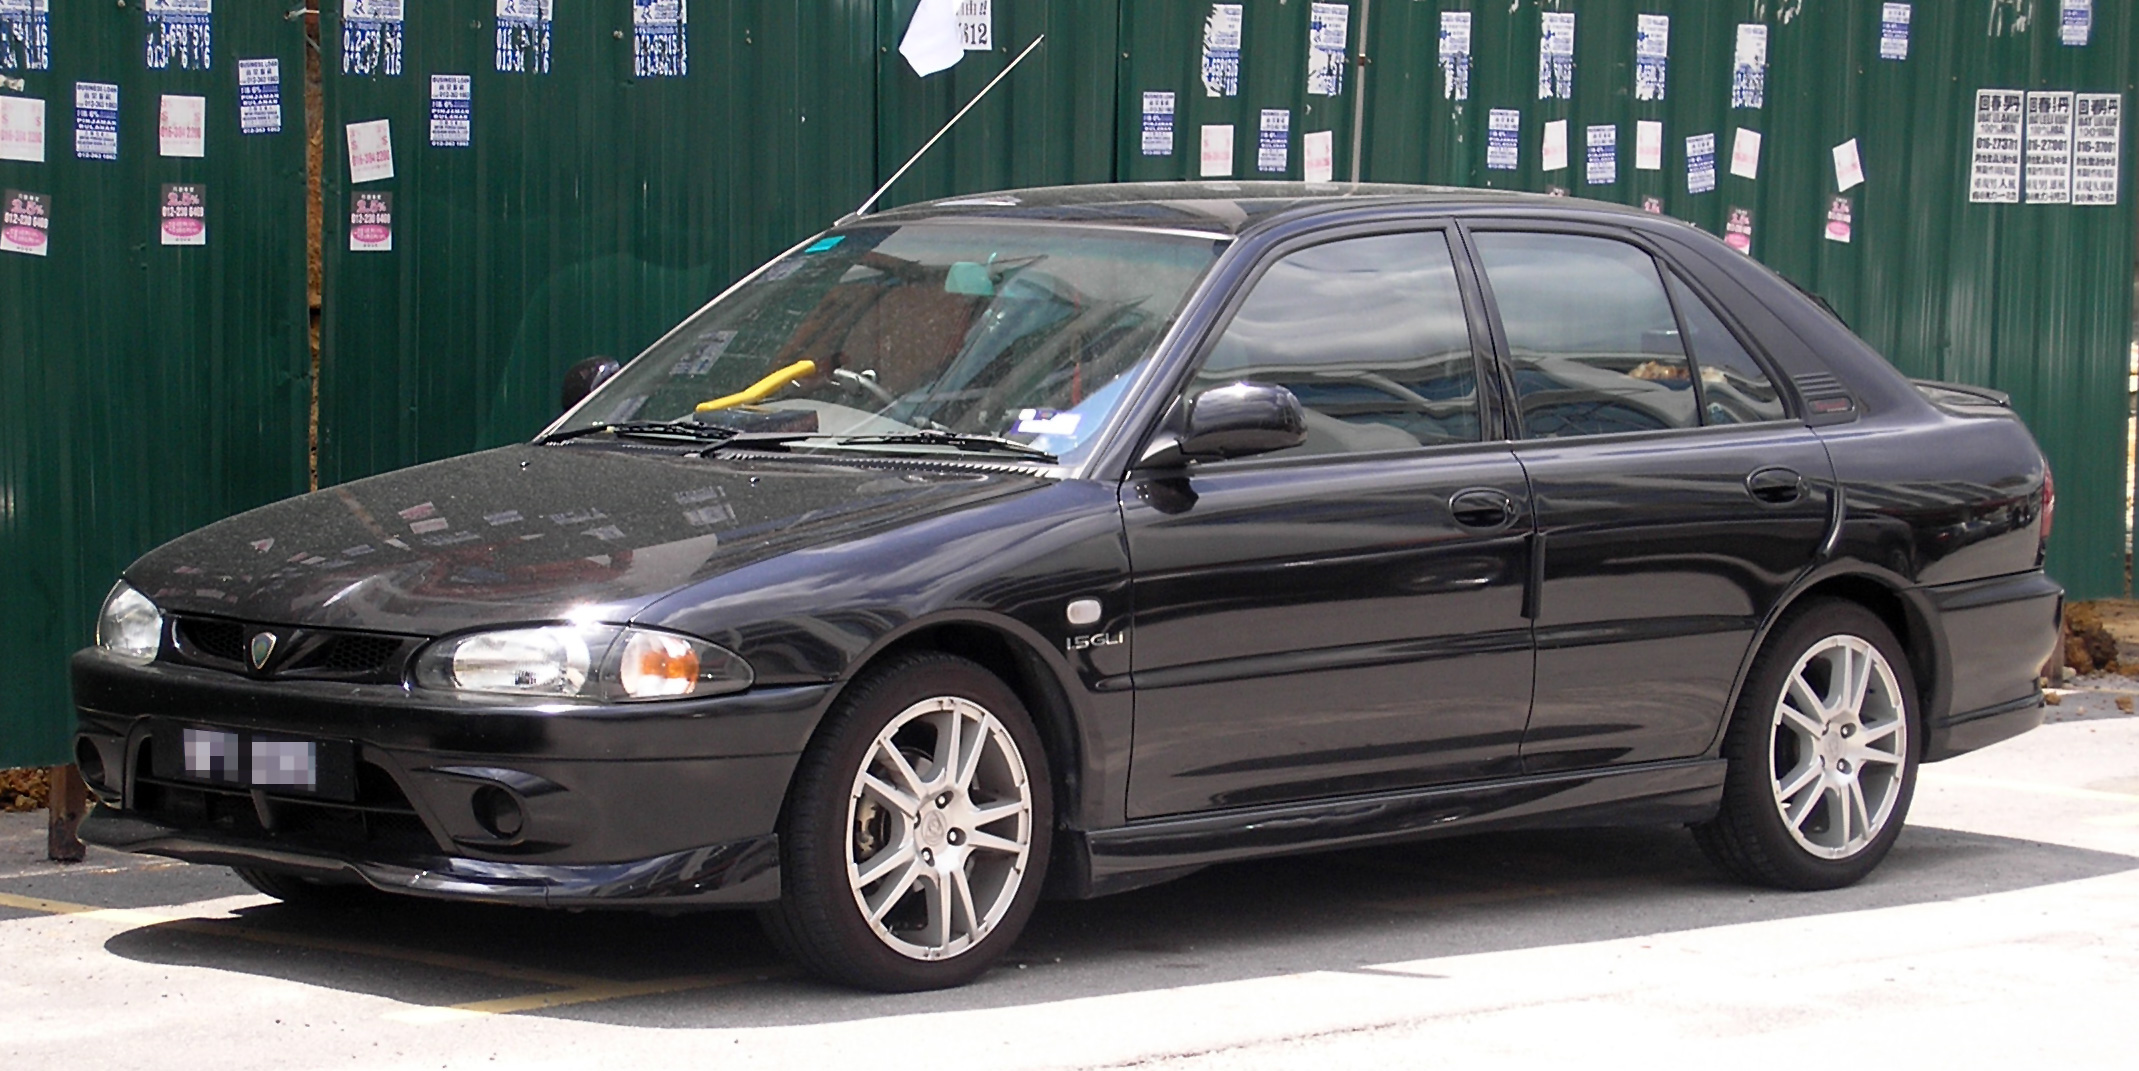 http://upload.wikimedia.org/wikipedia/commons/c/c6/Proton_Wira_(Aeroback,_Special_Edition)_(first_generation,_second_facelift)_(front),_Serdang.jpg